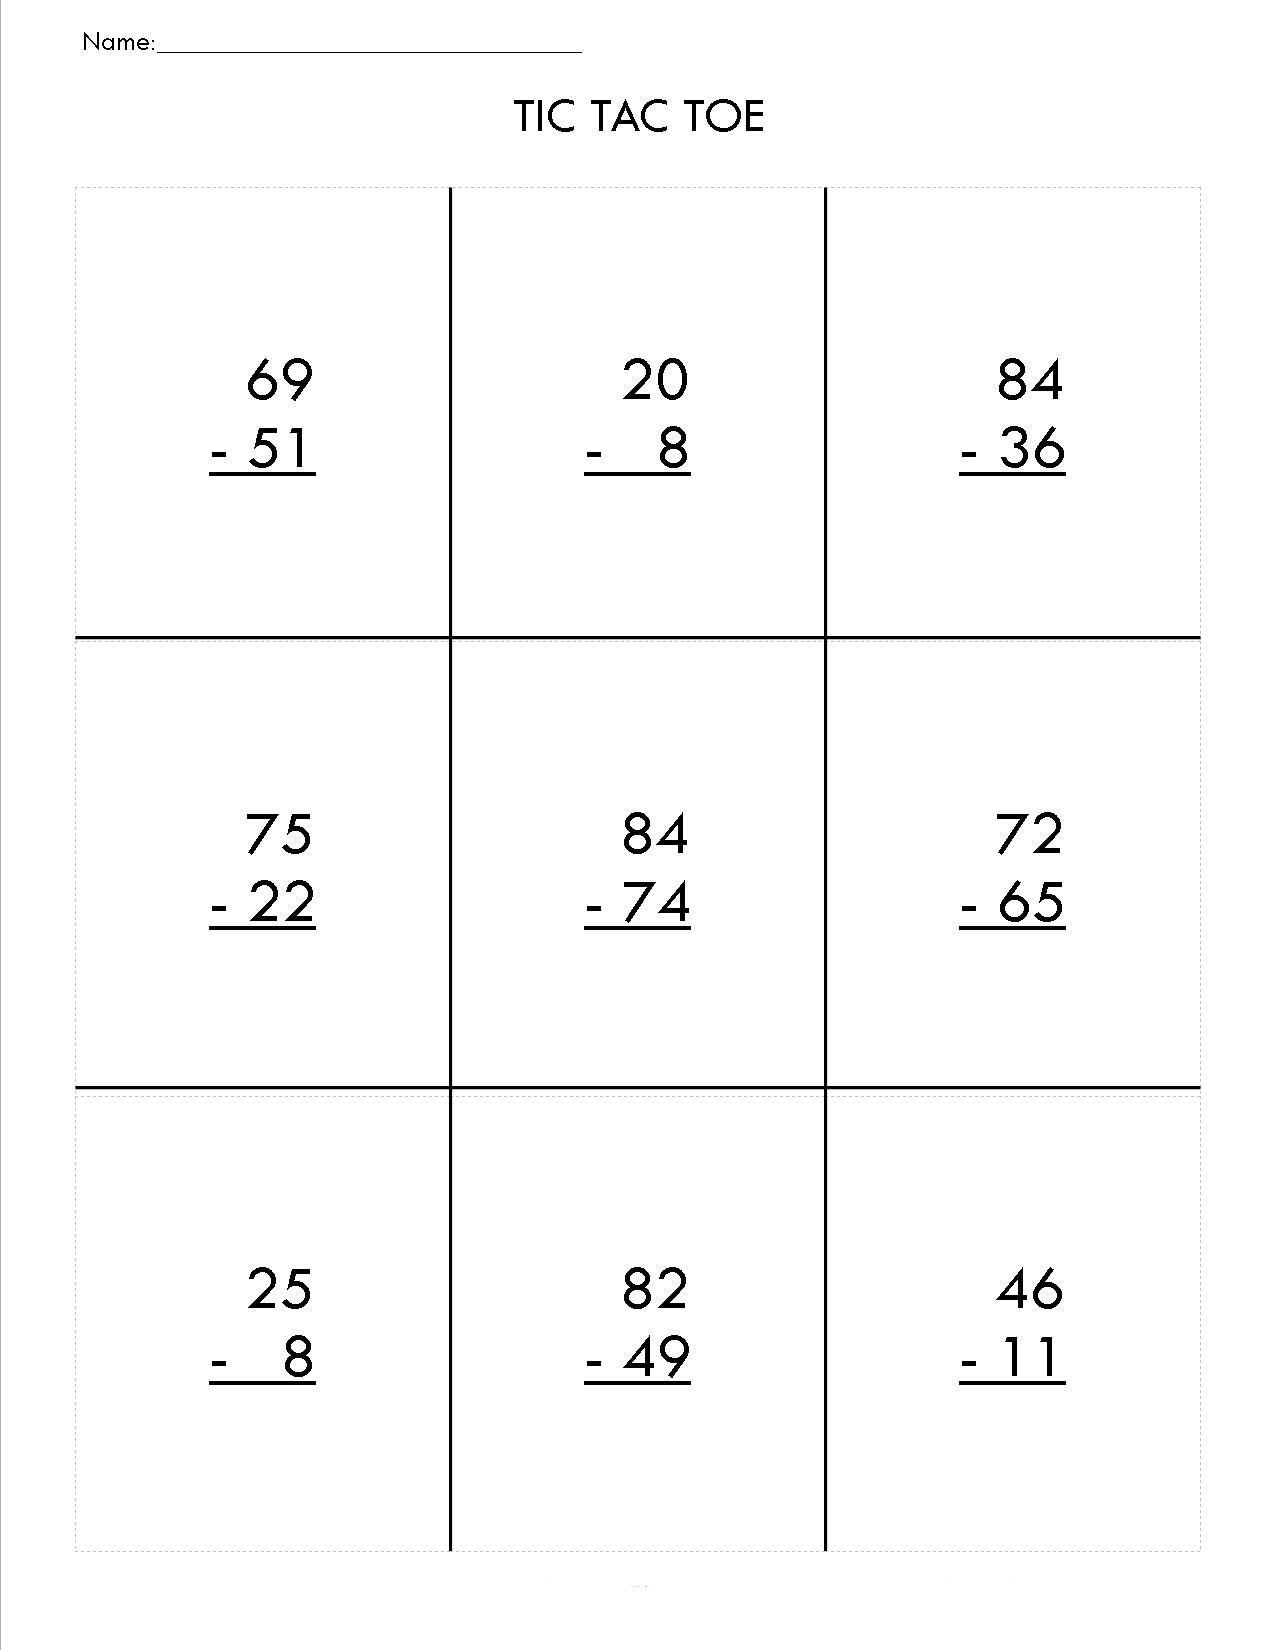 2nd Grade Math Worksheets Best Coloring Pages For Kids 2nd Grade Math Worksheets Math Worksheets 2nd Grade Math Math addition activities for second